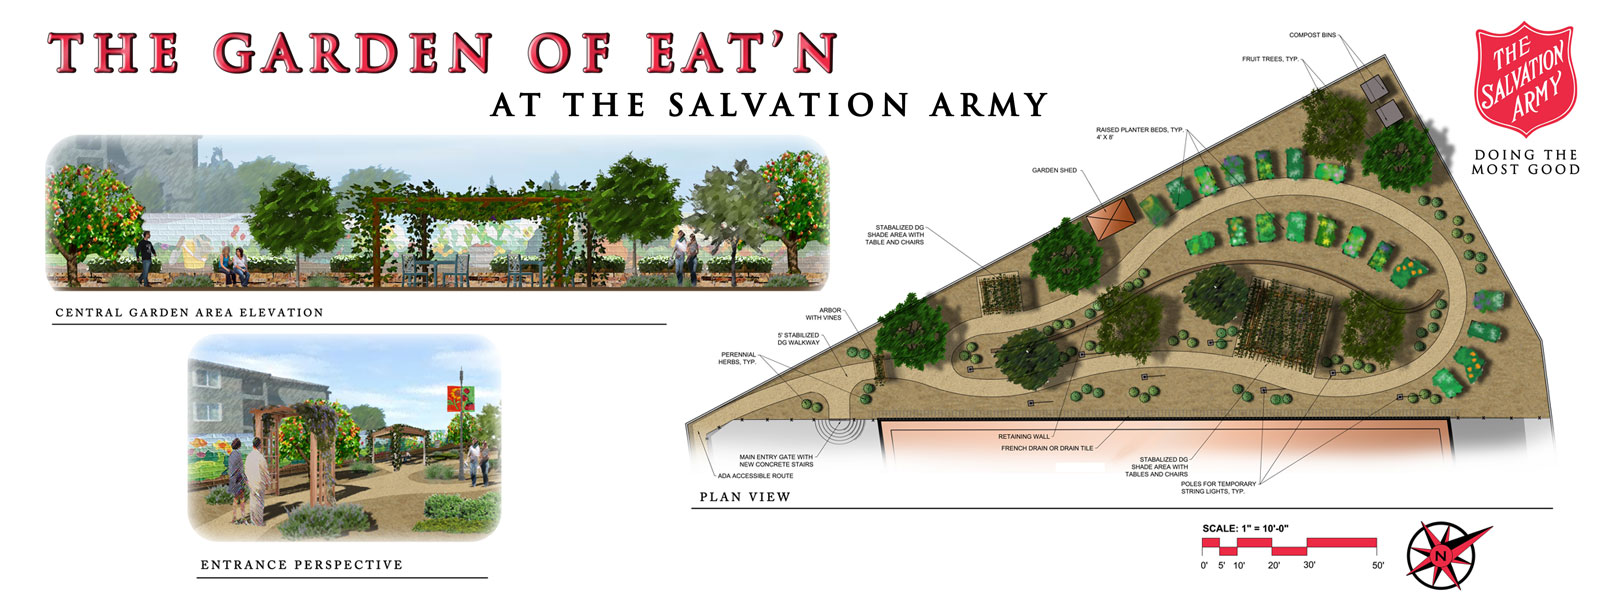 Rendering of proposed garden at the Salvation Army